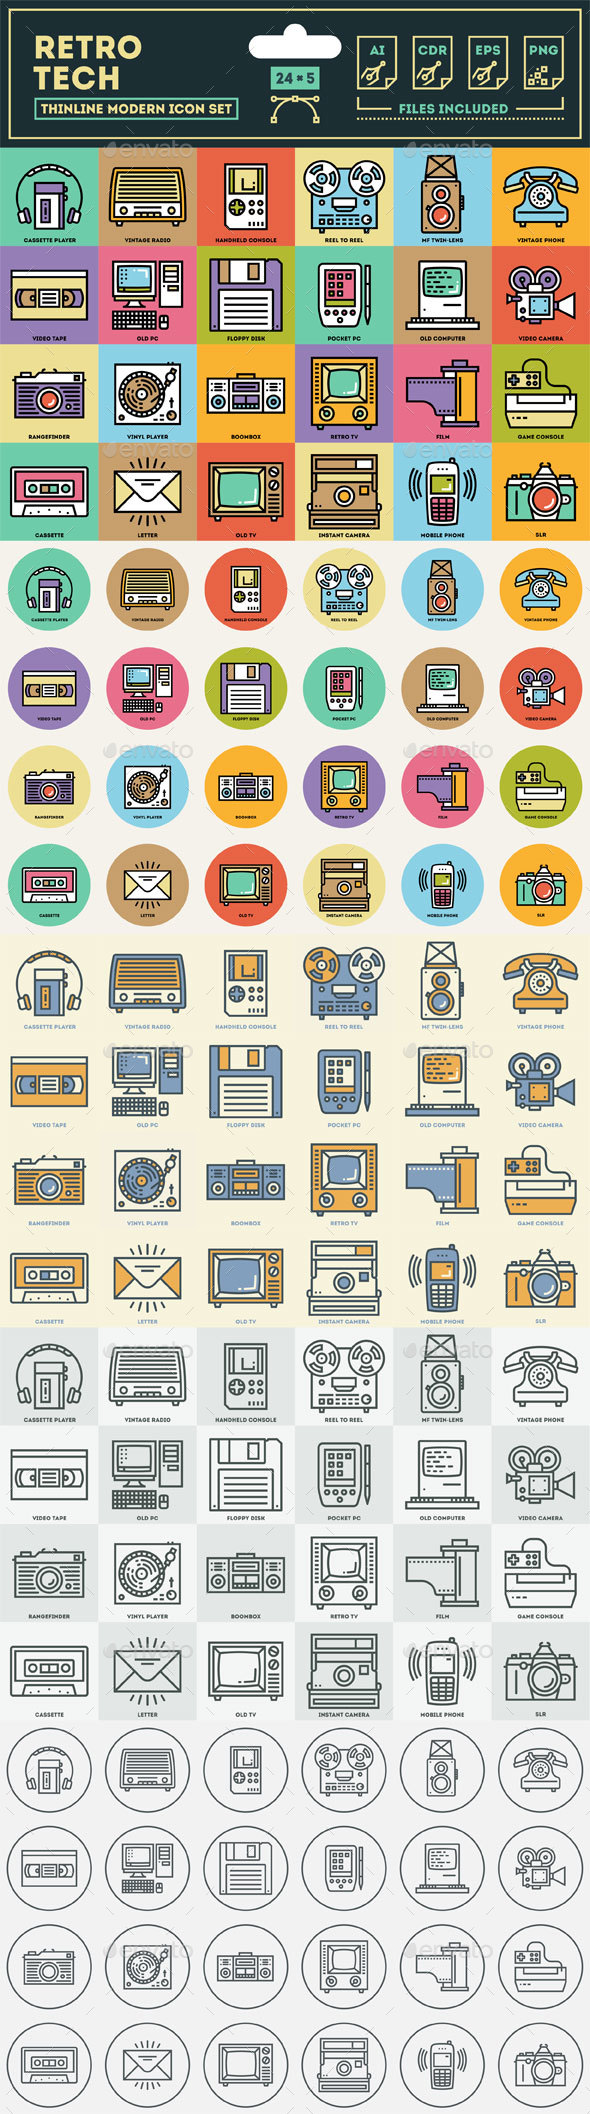 Retro Technology Icon Set - Retro Technology